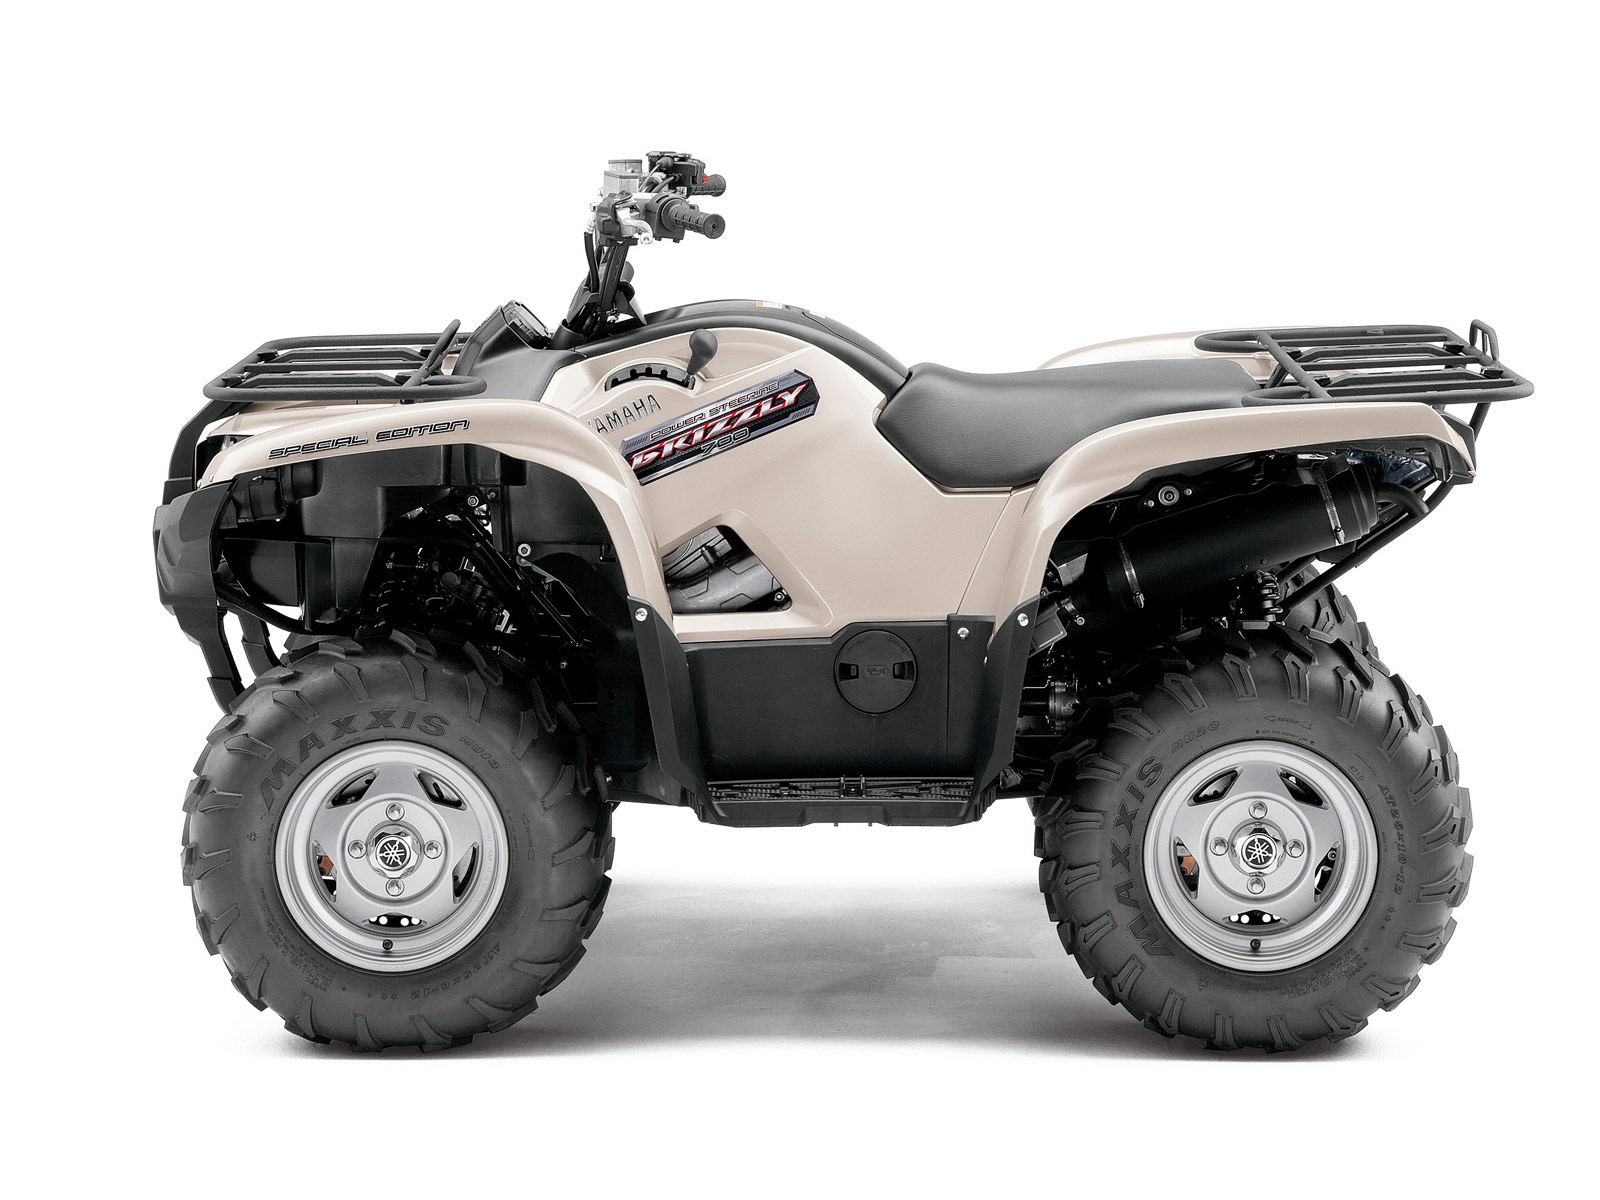 2012 yamaha grizzly 700fi auto 4x4 eps se pictures for Yamaha grizzly 4x4